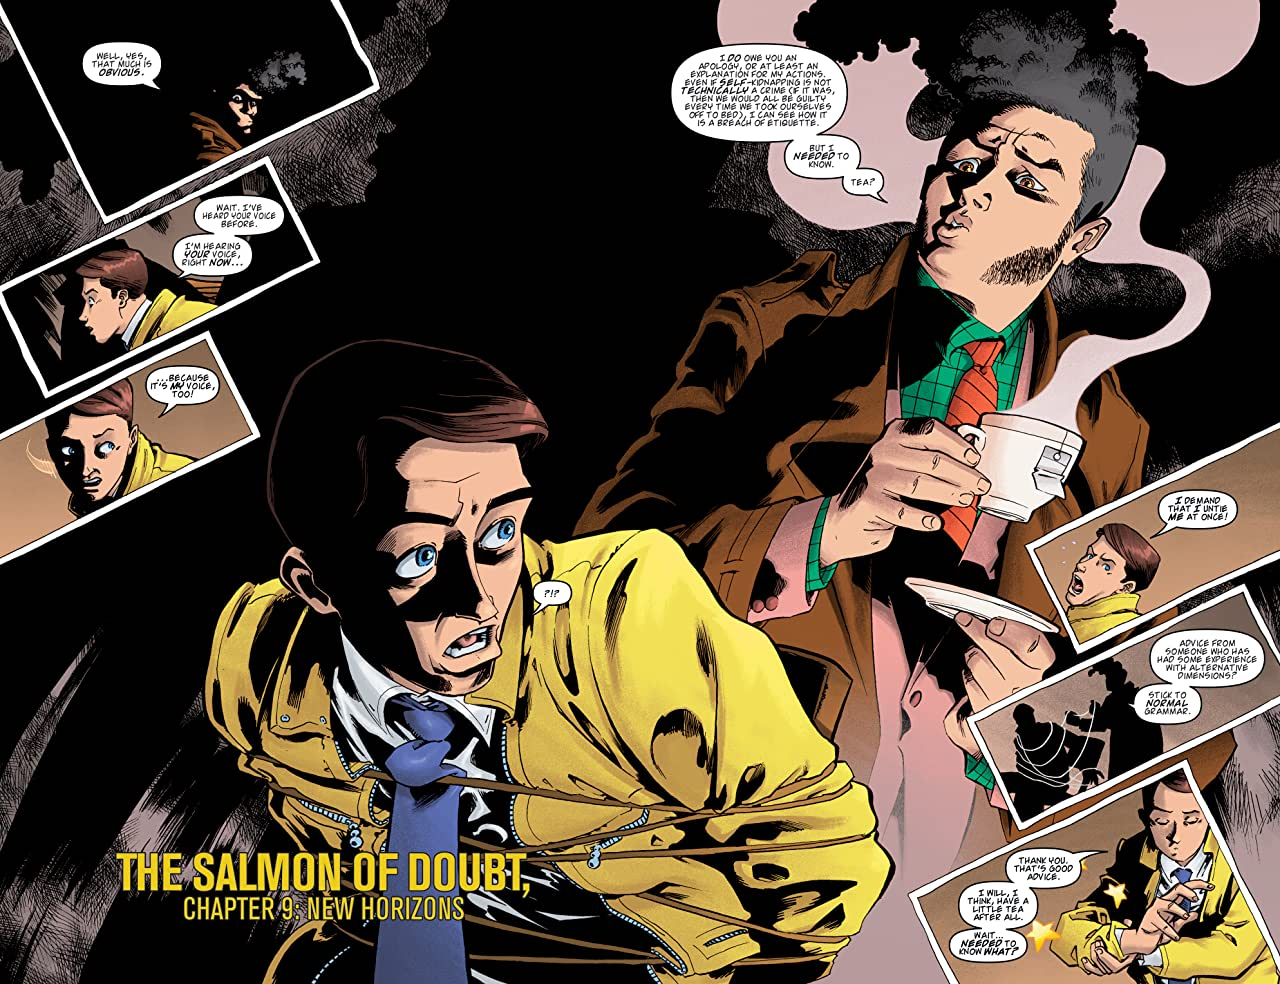 Dirk Gently: The Salmon of Doubt #9